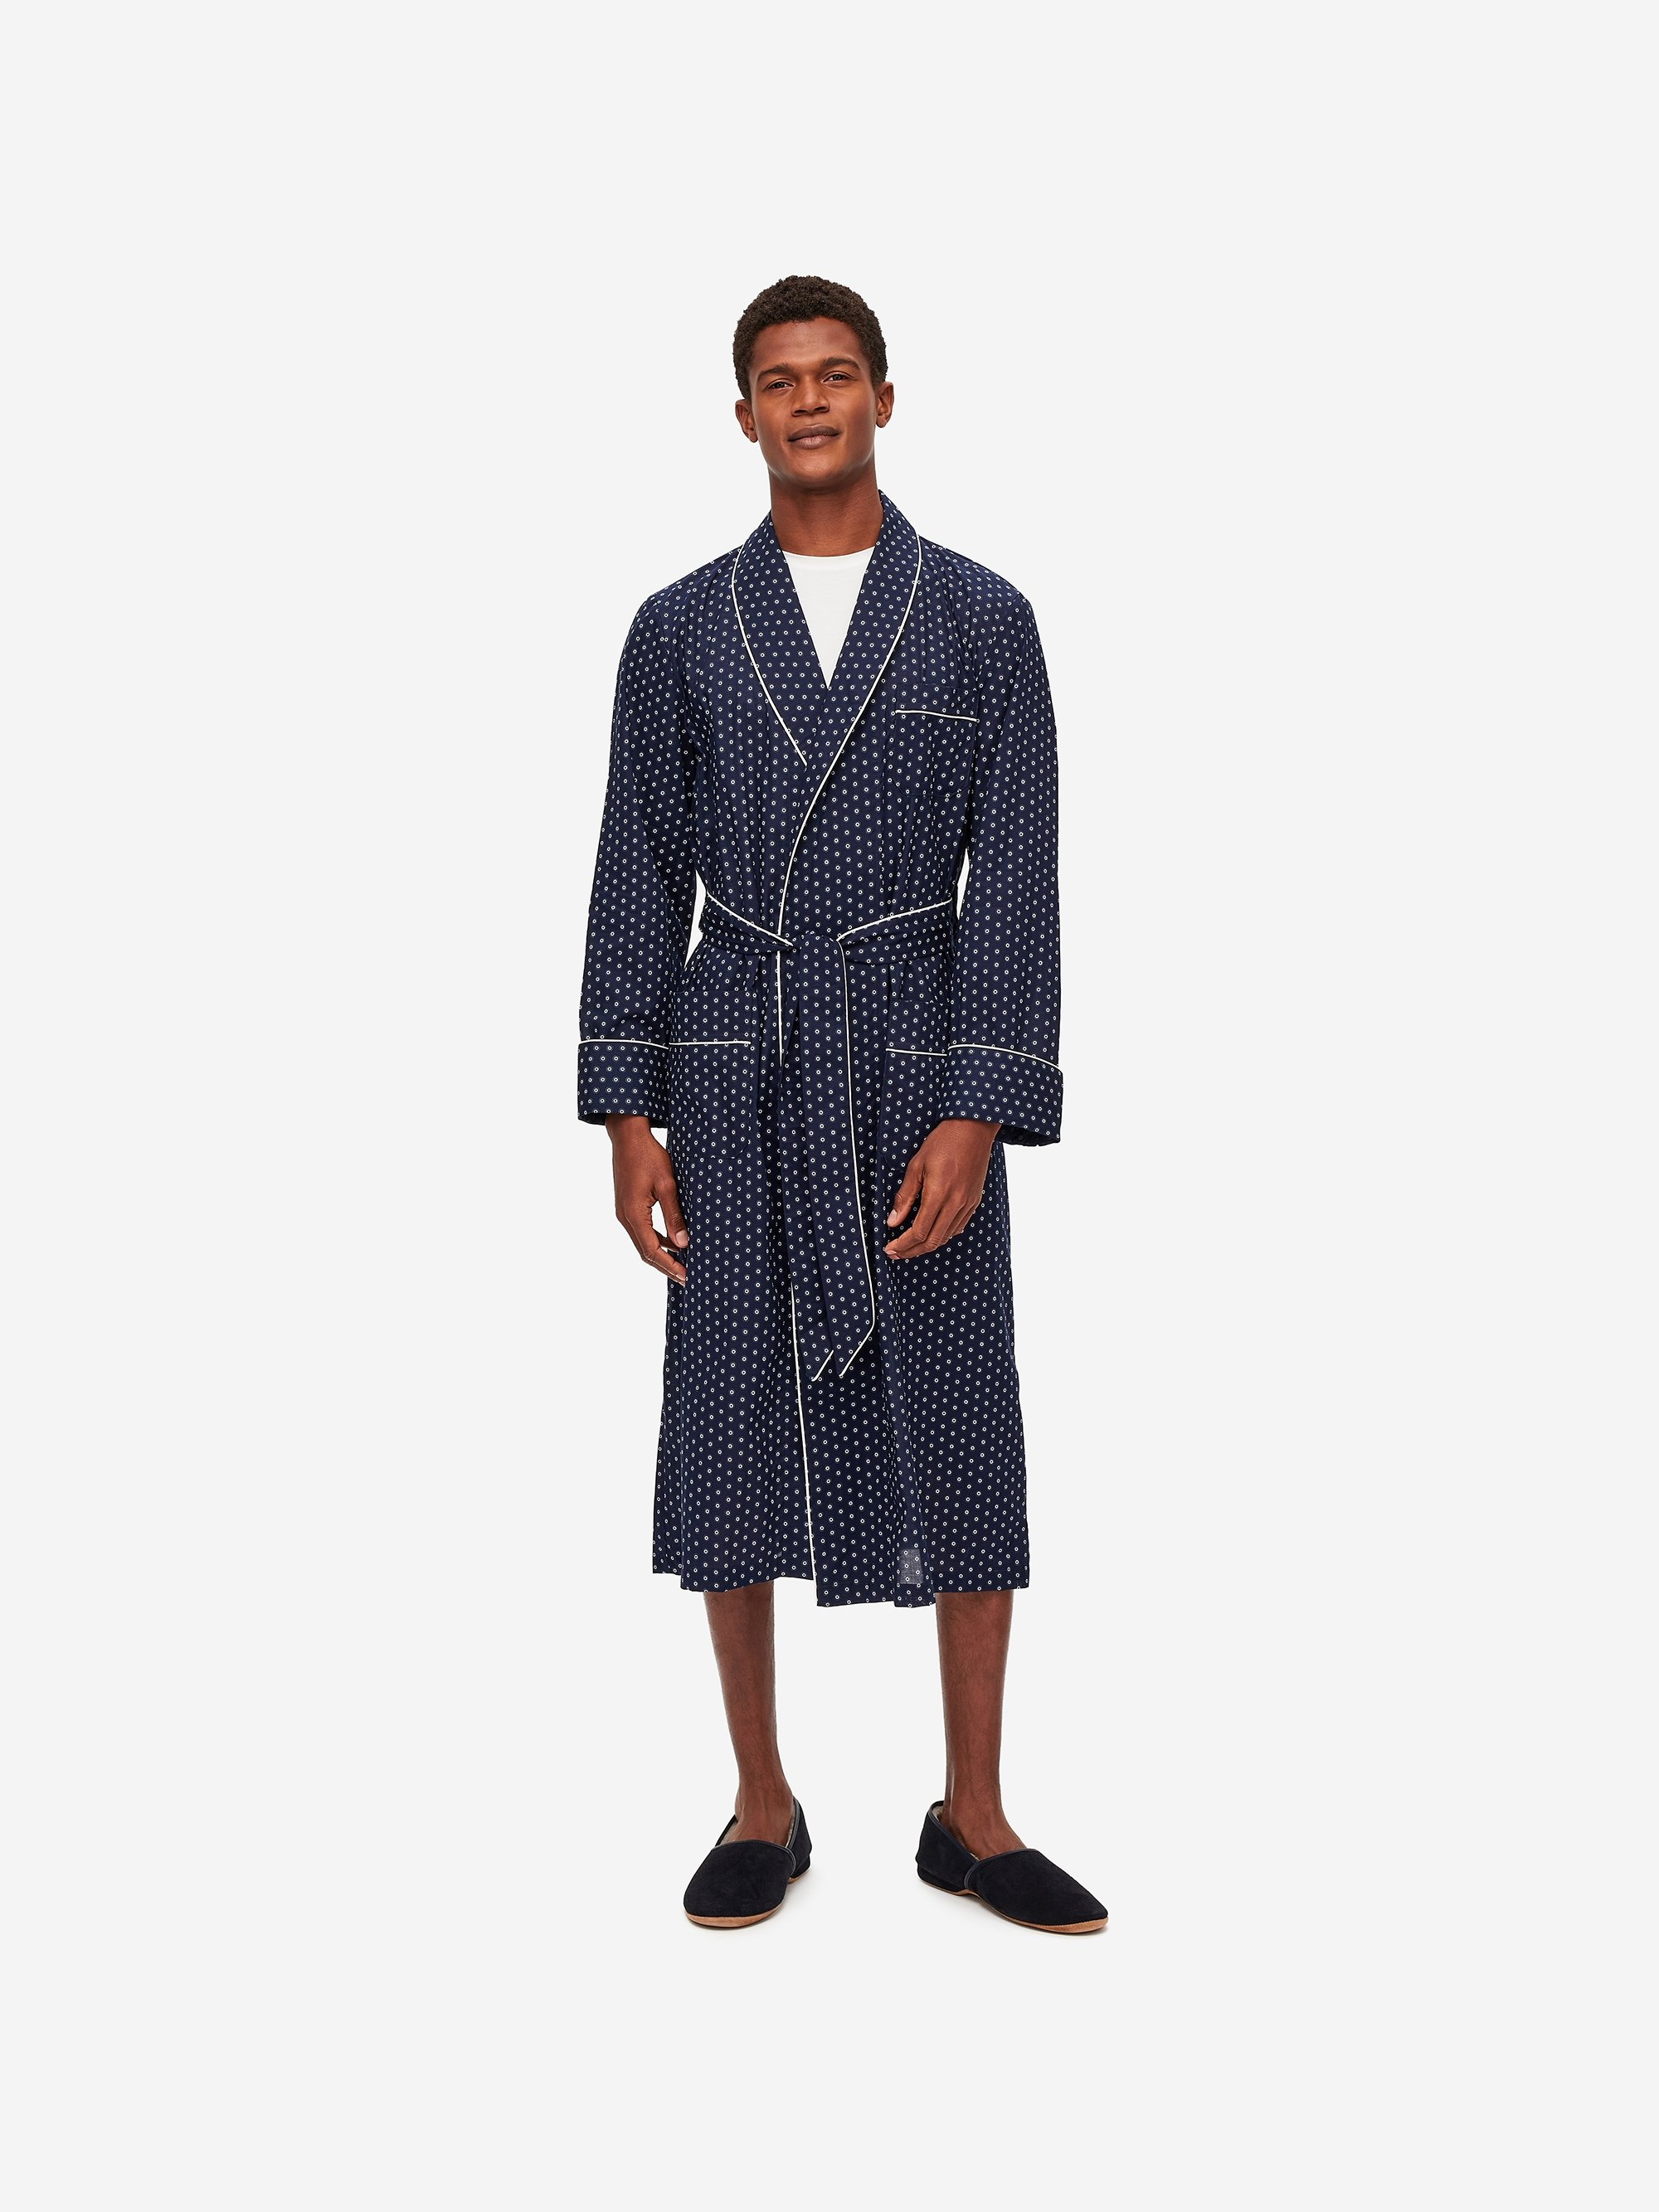 Men's Piped Dressing Gown Nelson 78 Cotton Batiste Navy